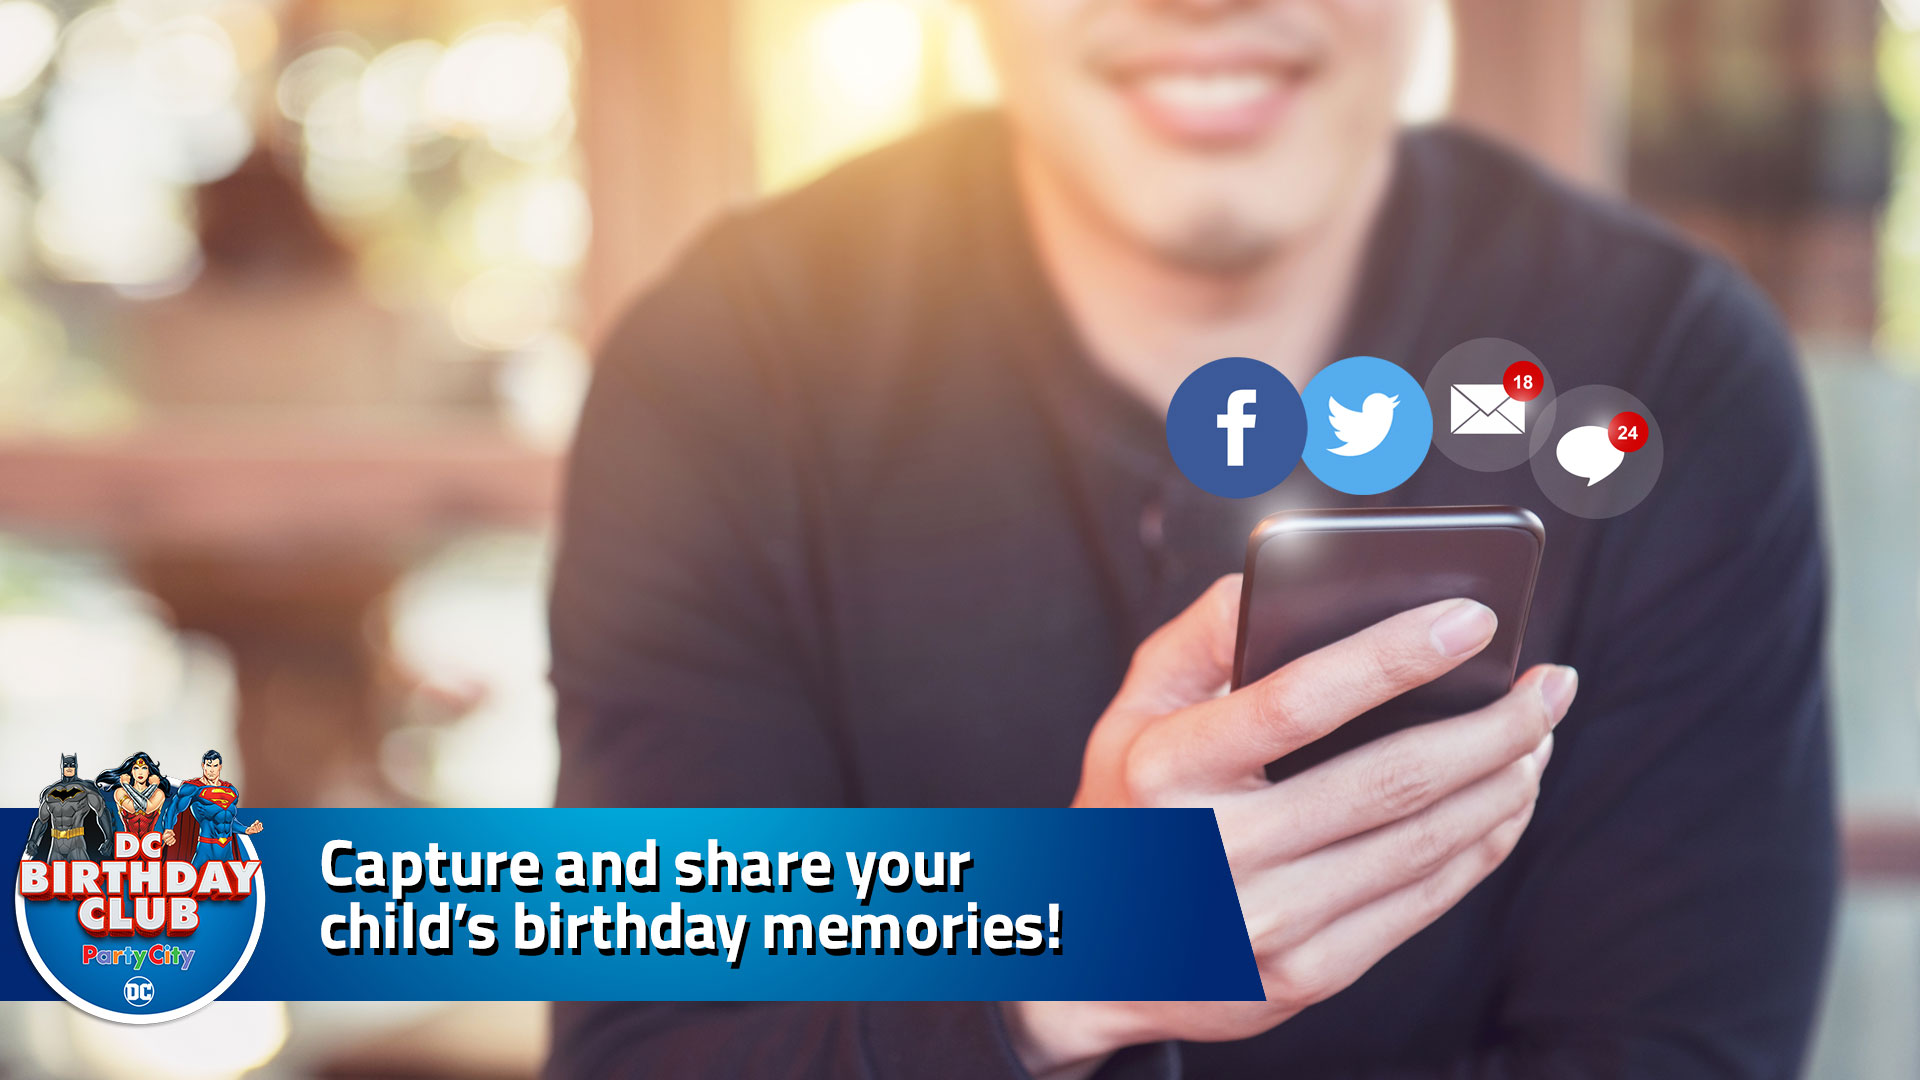 Capture and share your child's birthday memories!